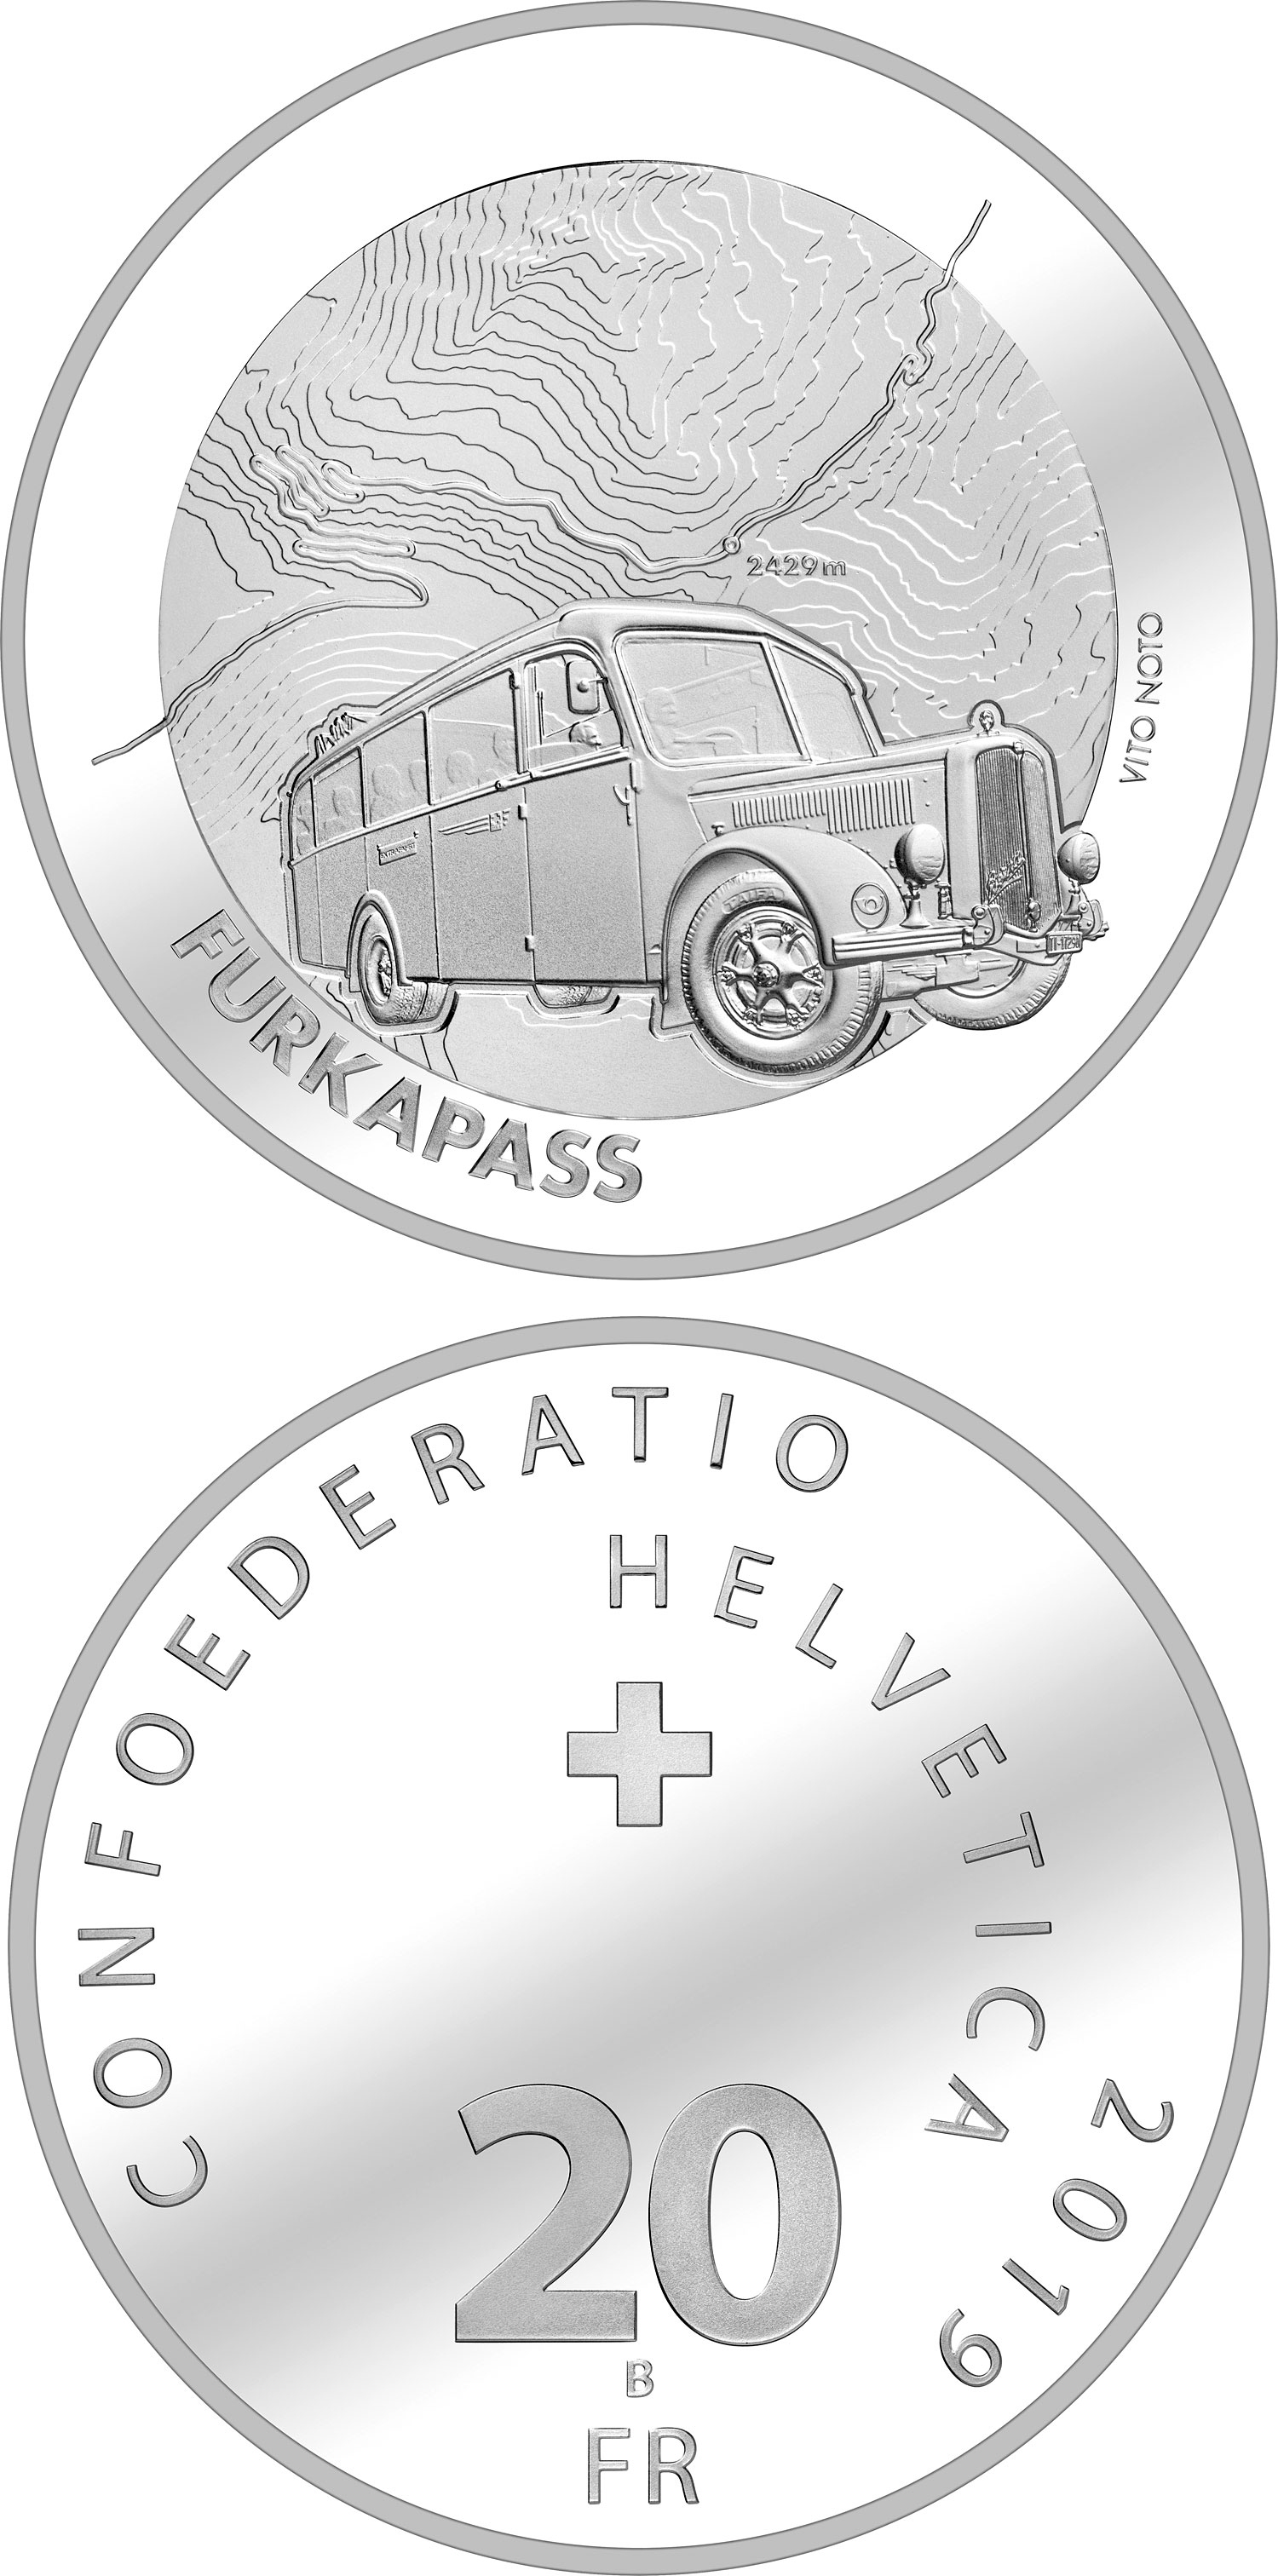 Image of 20 francs coin - Furka Pass | Switzerland 2019.  The Silver coin is of Proof, BU quality.